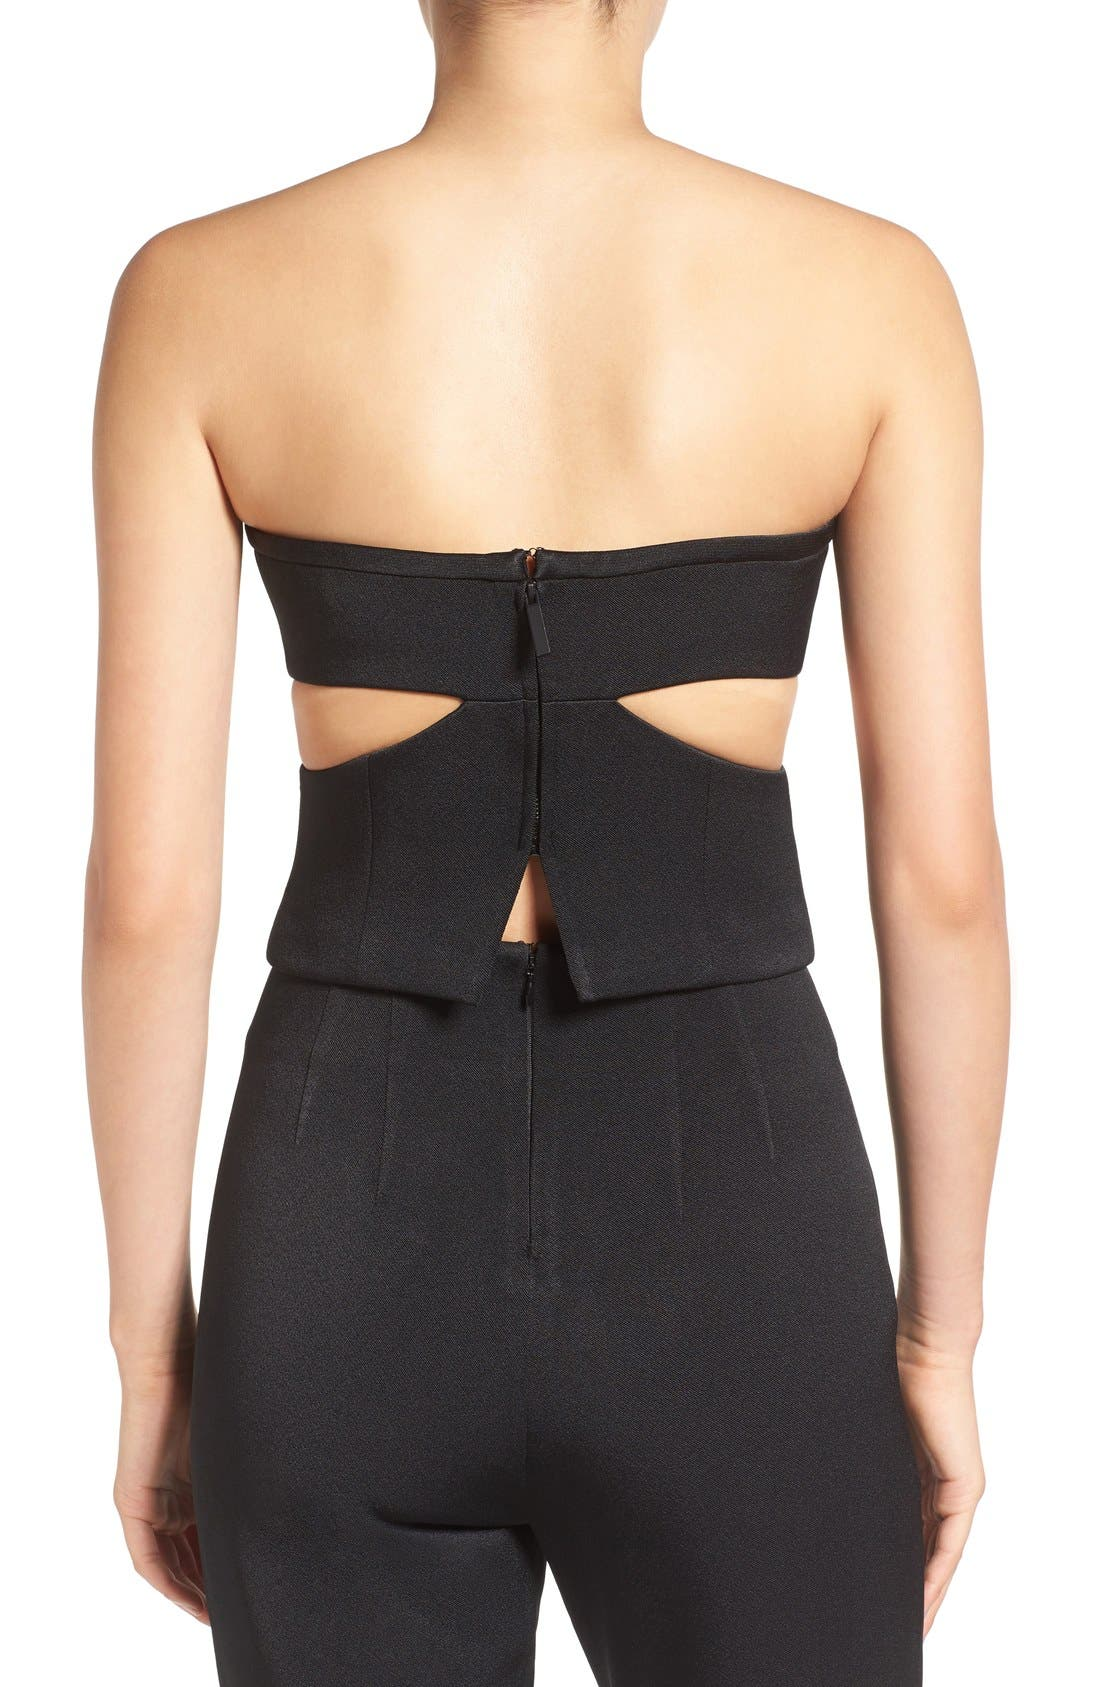 KENDALL + KYLIE,                             'Tuxedo' Cutout Strapless Bustier,                             Alternate thumbnail 4, color,                             001